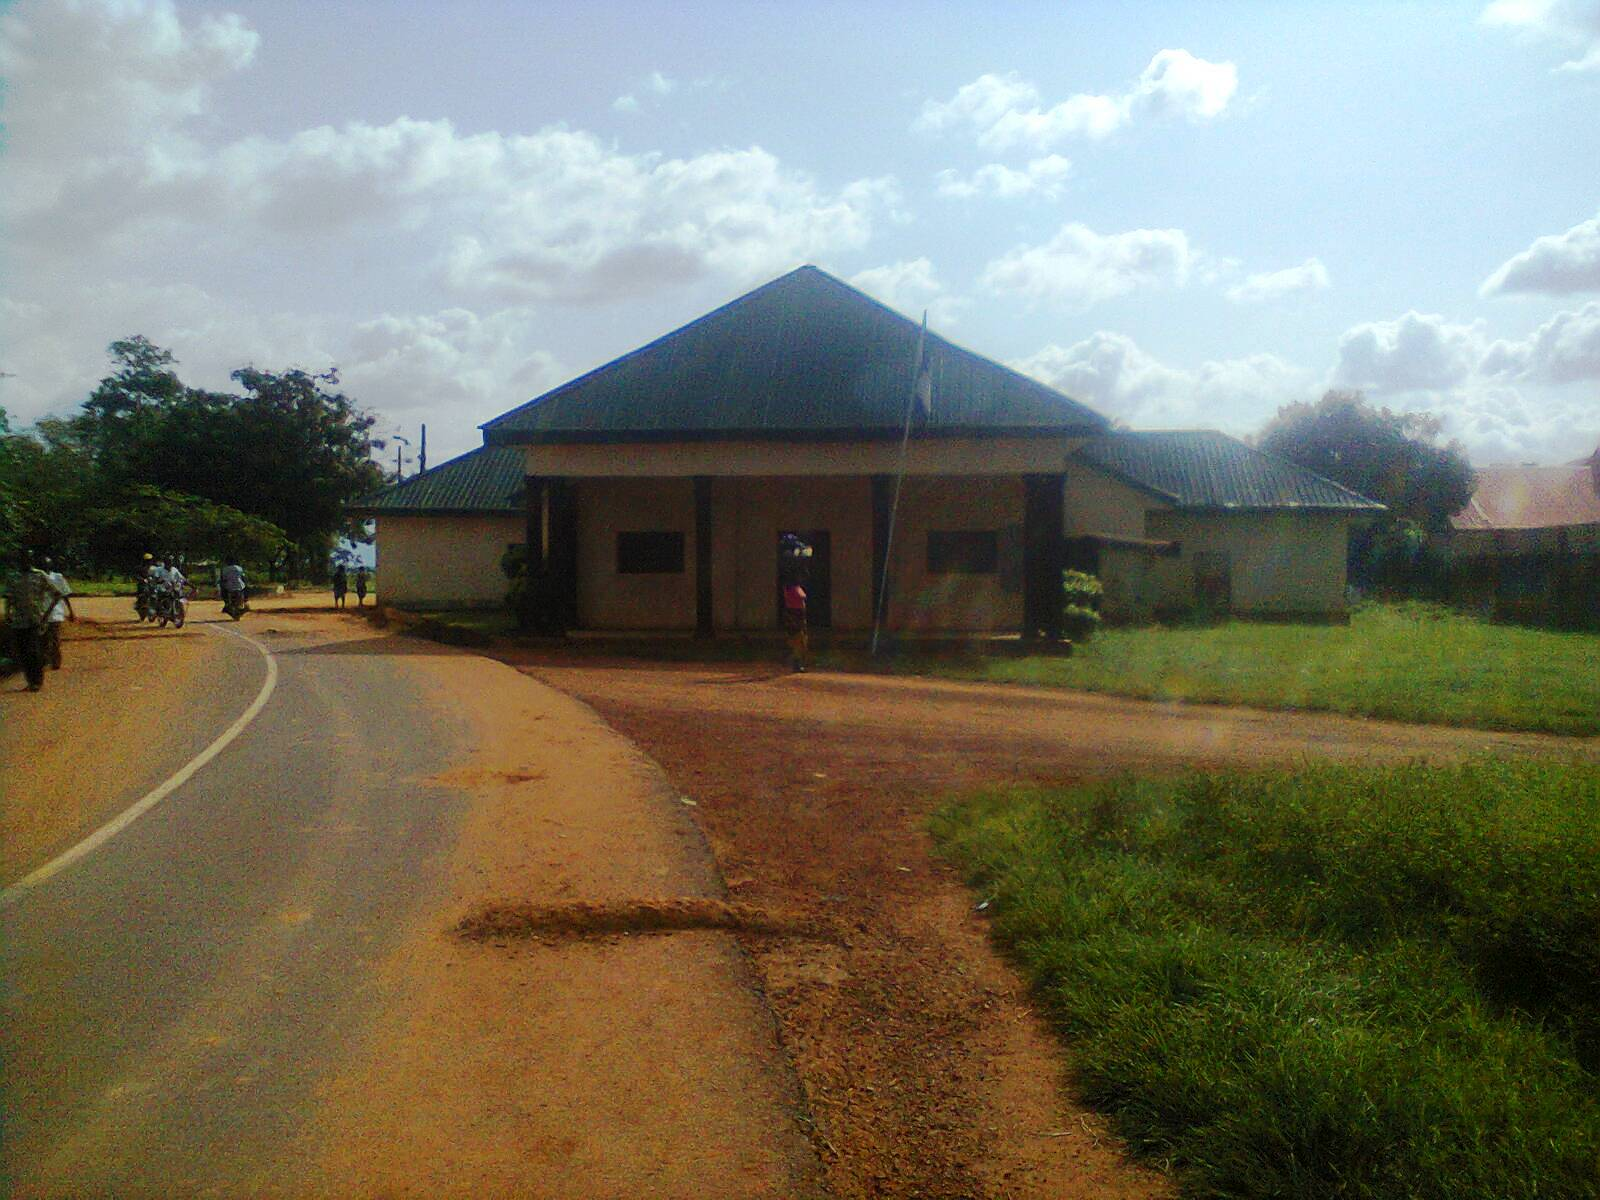 Liyel Imoke Civic Center, Obudu